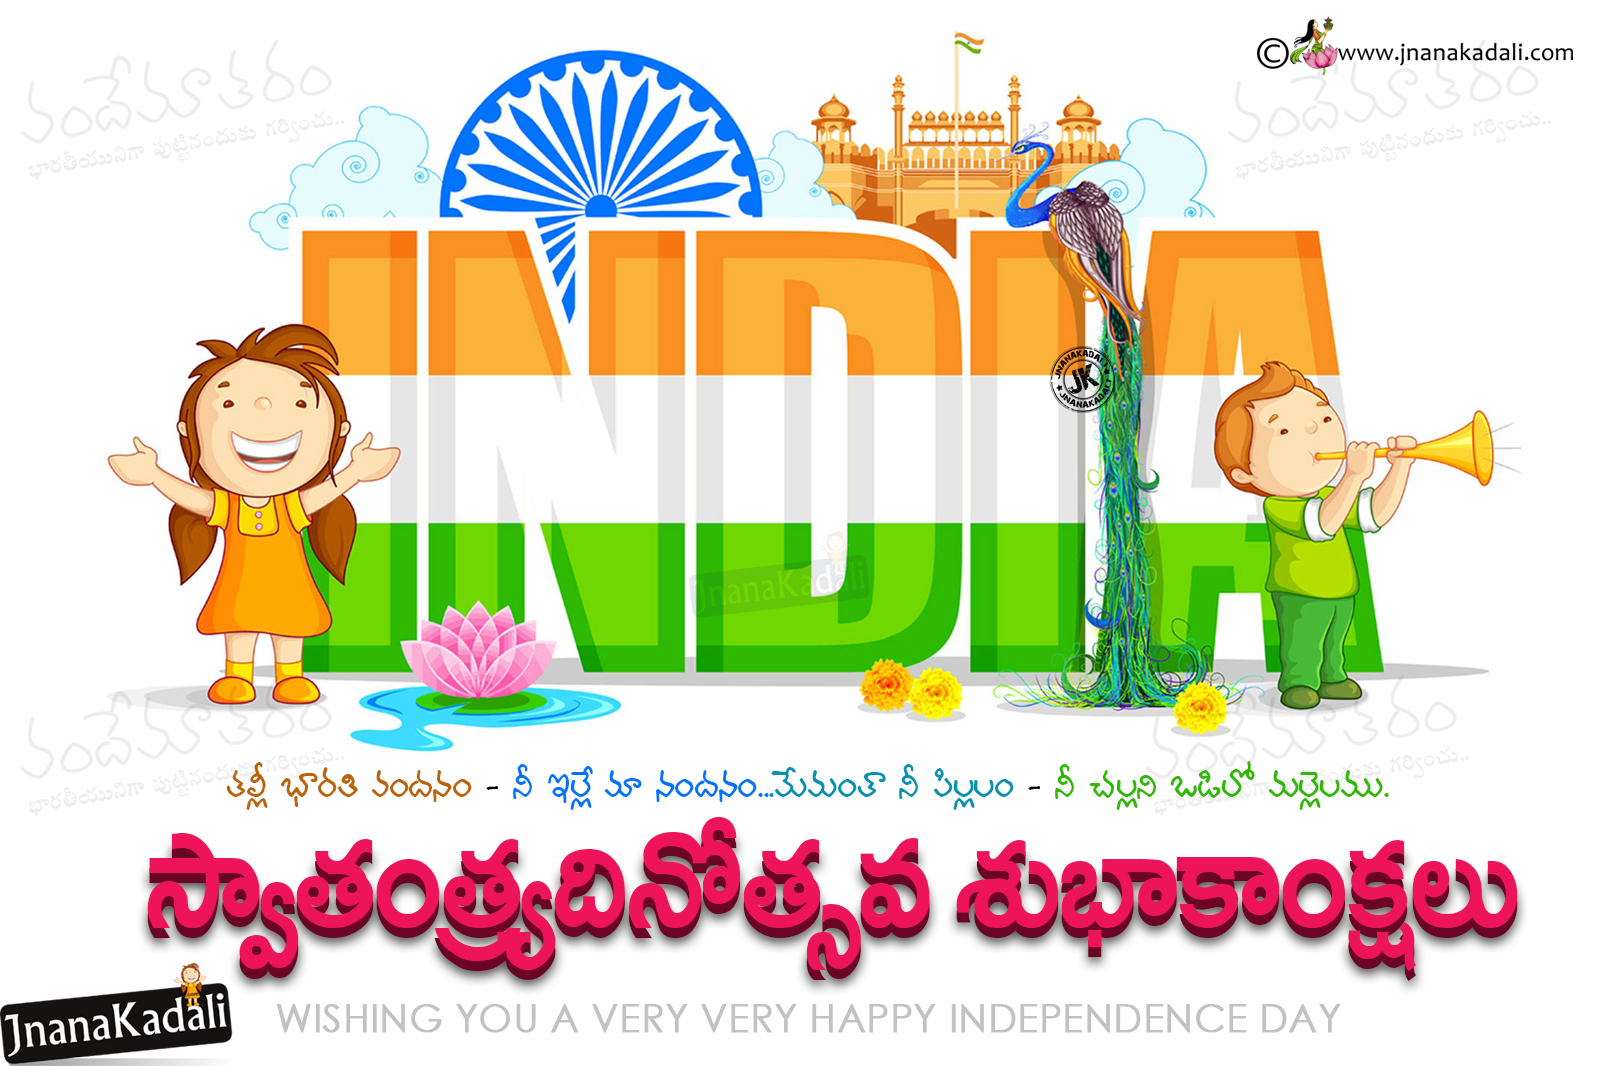 Essays On Independence Day In Telugu  Business Etiquette Essay also Can I Pay Someone To Do A Book Report For Me?  Purchase Ppt Presentation